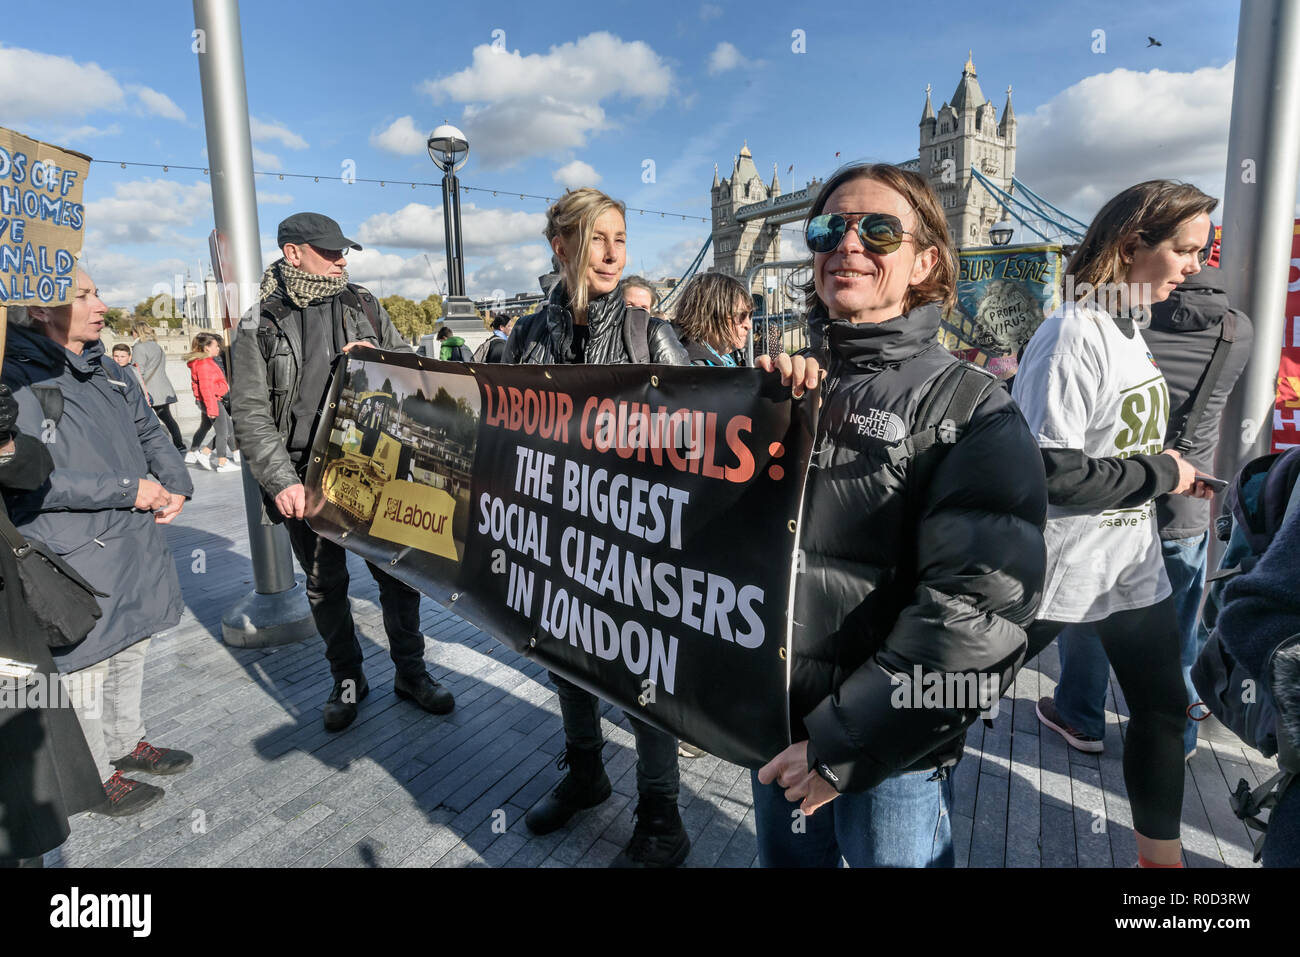 London, UK. 3rd November 2018. Several hundred people, mainly from London's council estates under threat of demolition by Labour London councils came to a protest outside City Hall called by 'Axe the Housing Act'. Class War brought a banner shaming Labour Councils as the Biggest Social Cleansers in London. The protest called for an end to estate demolitions unless  approved by a ballot of all residents, and for public land to be used to build more council homes rather than being turned over to developers to make huge profits from high-priced flats. Speaker after speaker from estate after estat - Stock Image